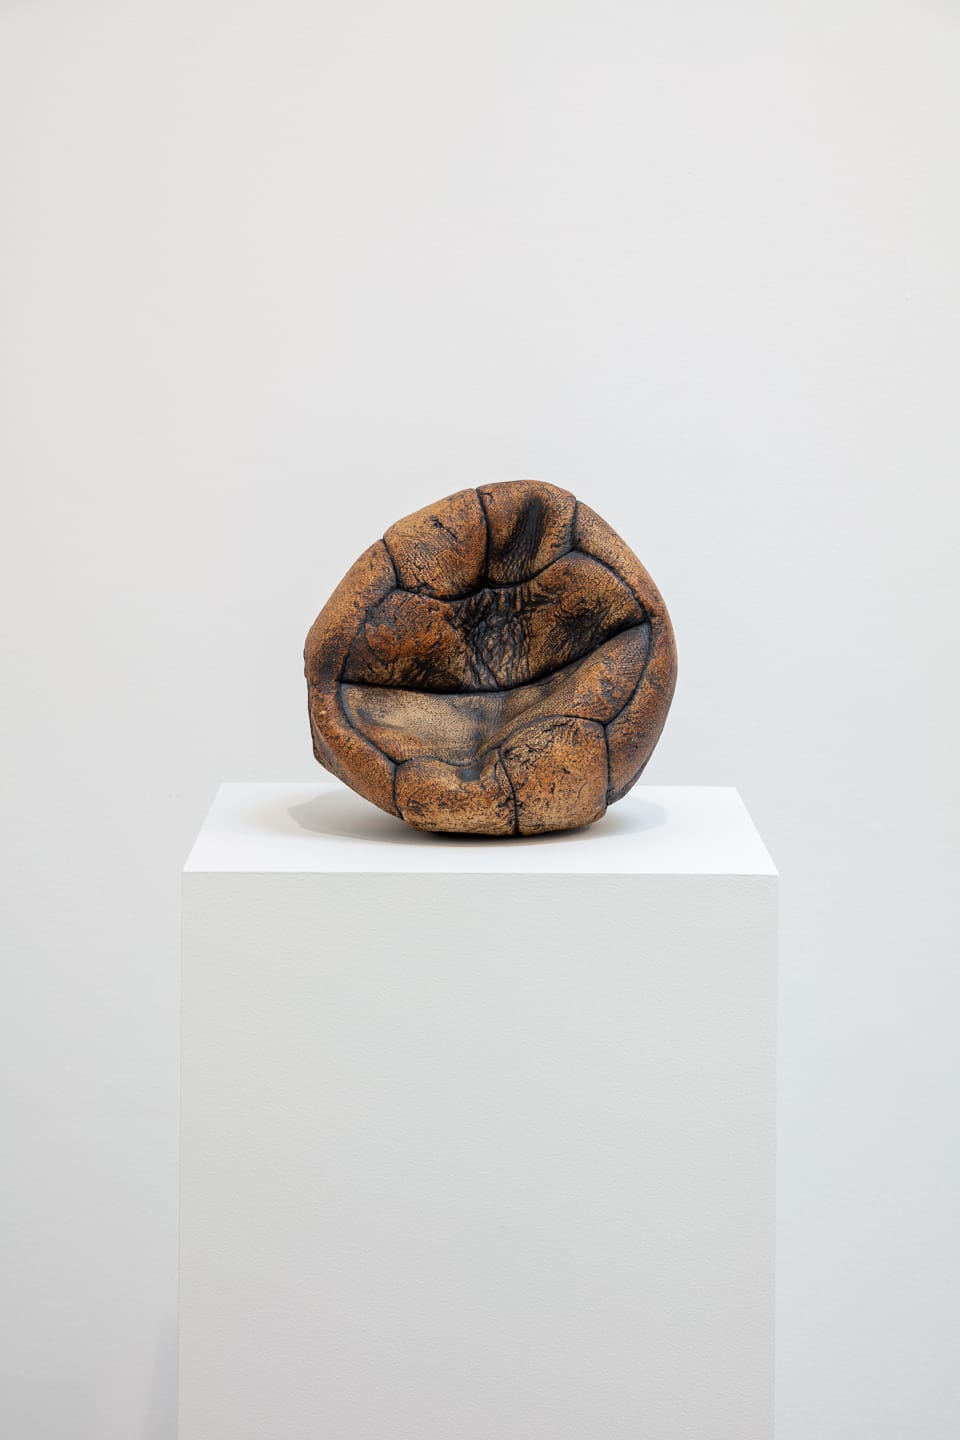 Marcus Harvey Ball, 2018 Glazed stoneware 19 x 22 x 16 cm Edition of 22